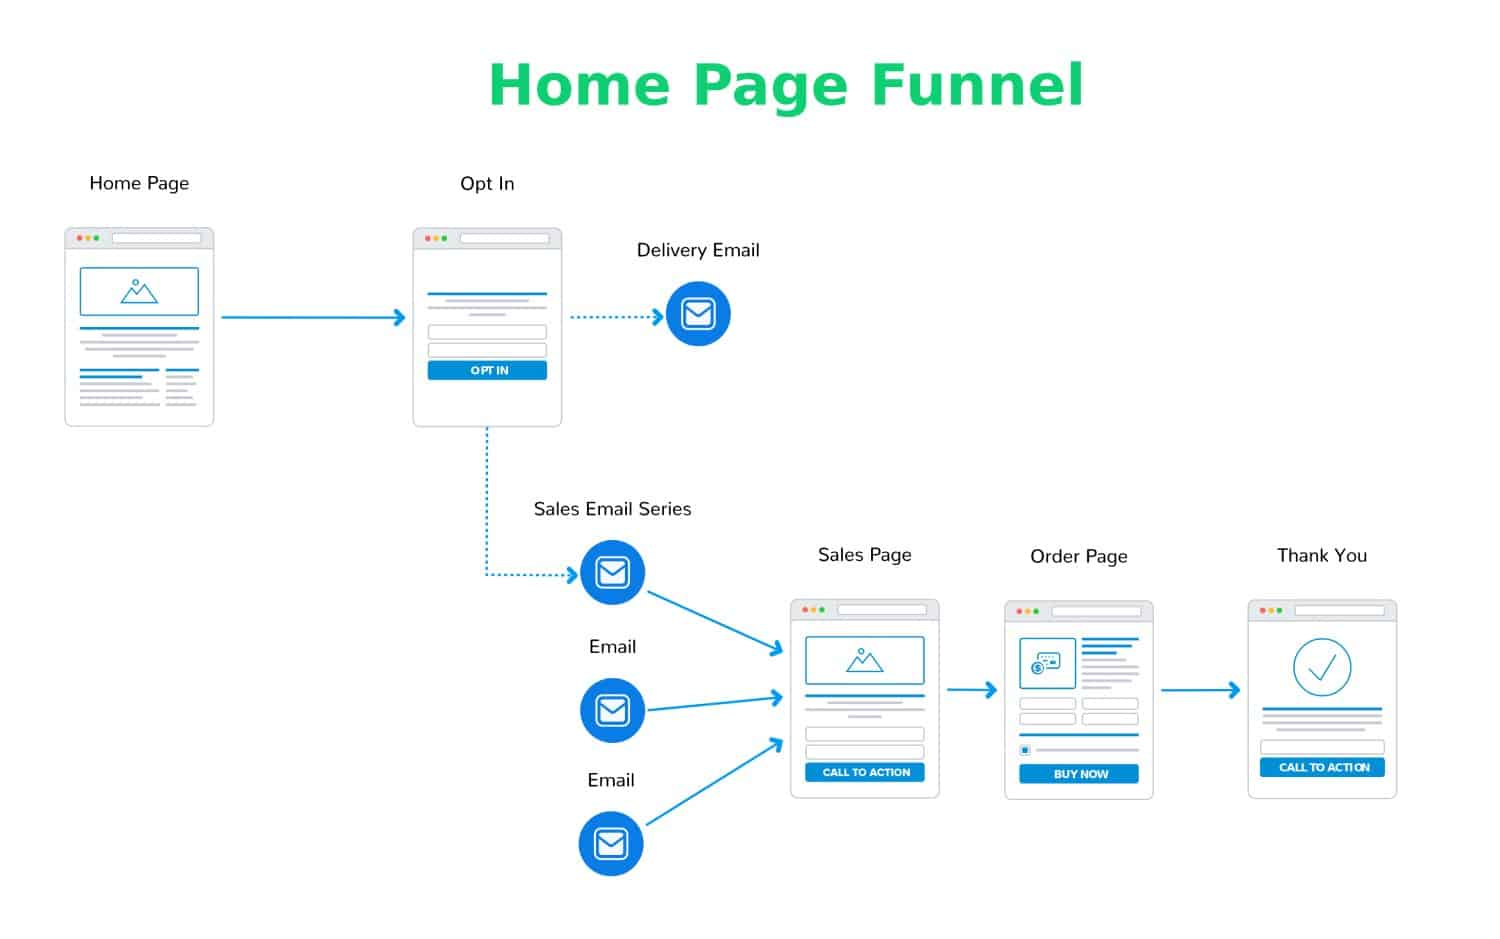 Home Page Funnel